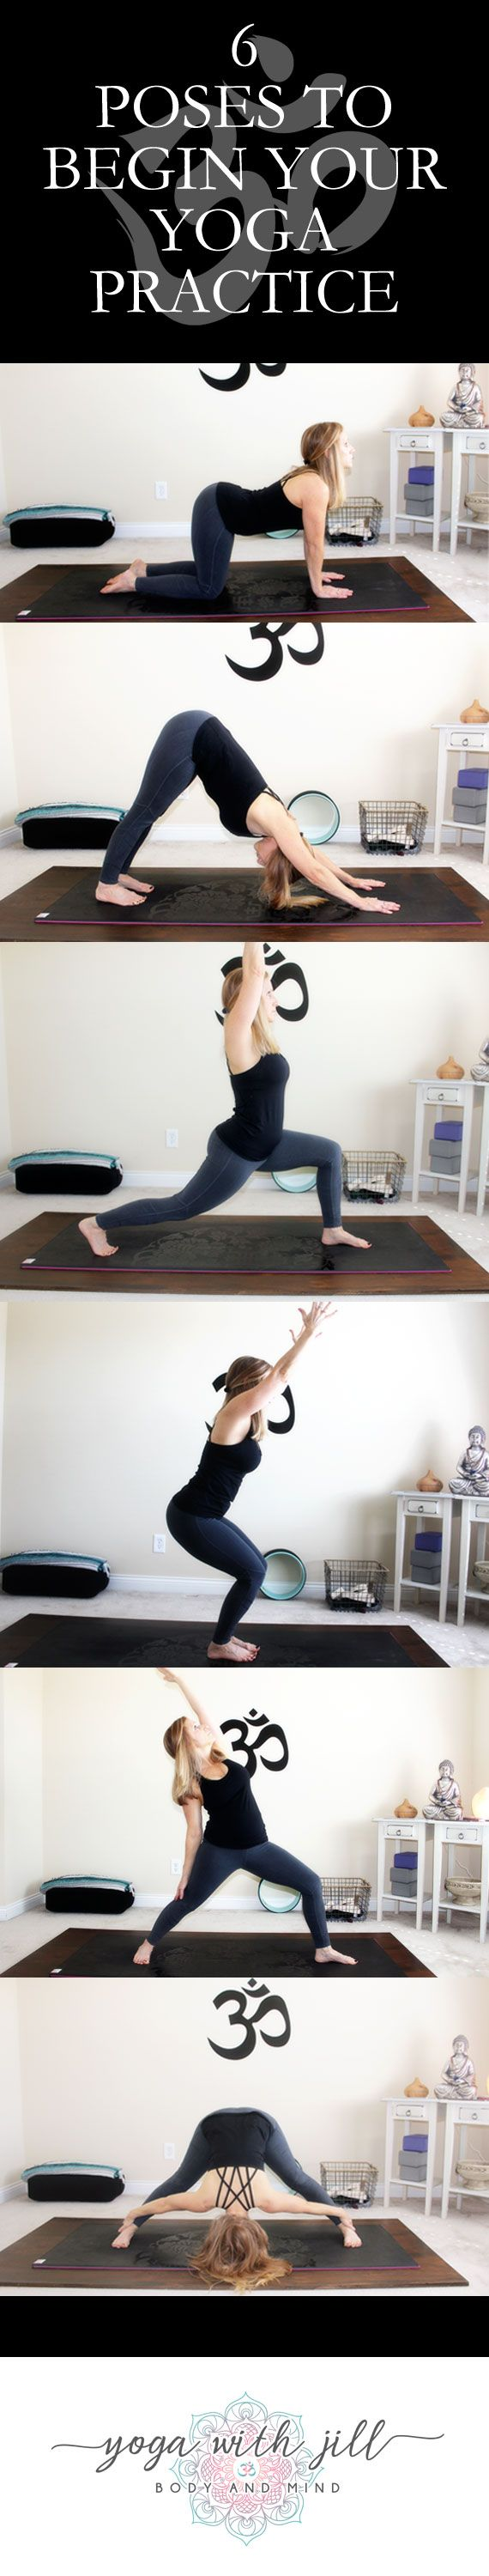 Ignite your best life through yoga, on and off the mat. This is about all of us, thriving and growing together. There are over 300 poses in the physical practice of yoga and I've chosen 6 poses to get you started on the right path. If you enjoy music for your practice, try this playlist. It's one of my favorites. Click through to http://jillconyers.com to download the pose guide and listen to the yoga playlist. Pin it now, practice later.